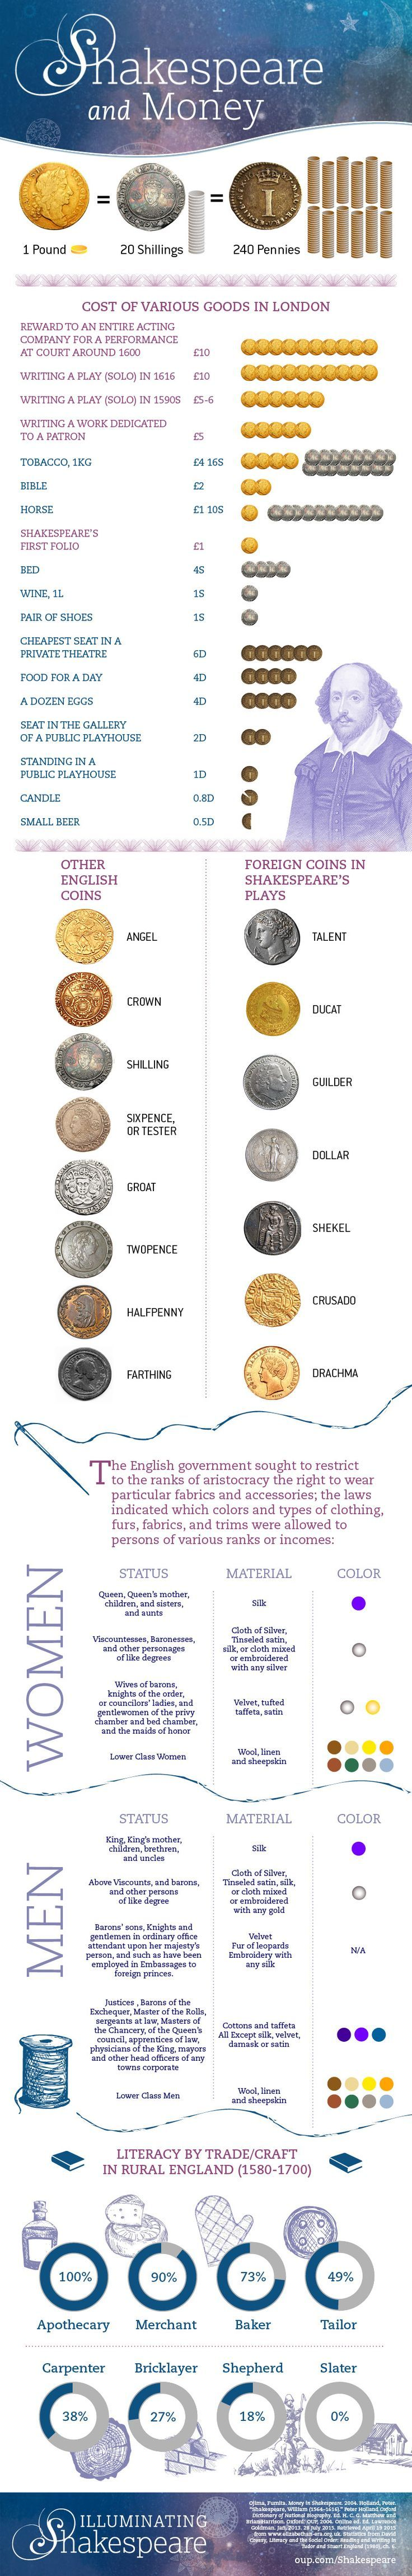 How does Shakespeare incorporate money into his work? An infographic explores the cost of goods, rules of dress according to status, and literacy by trade.